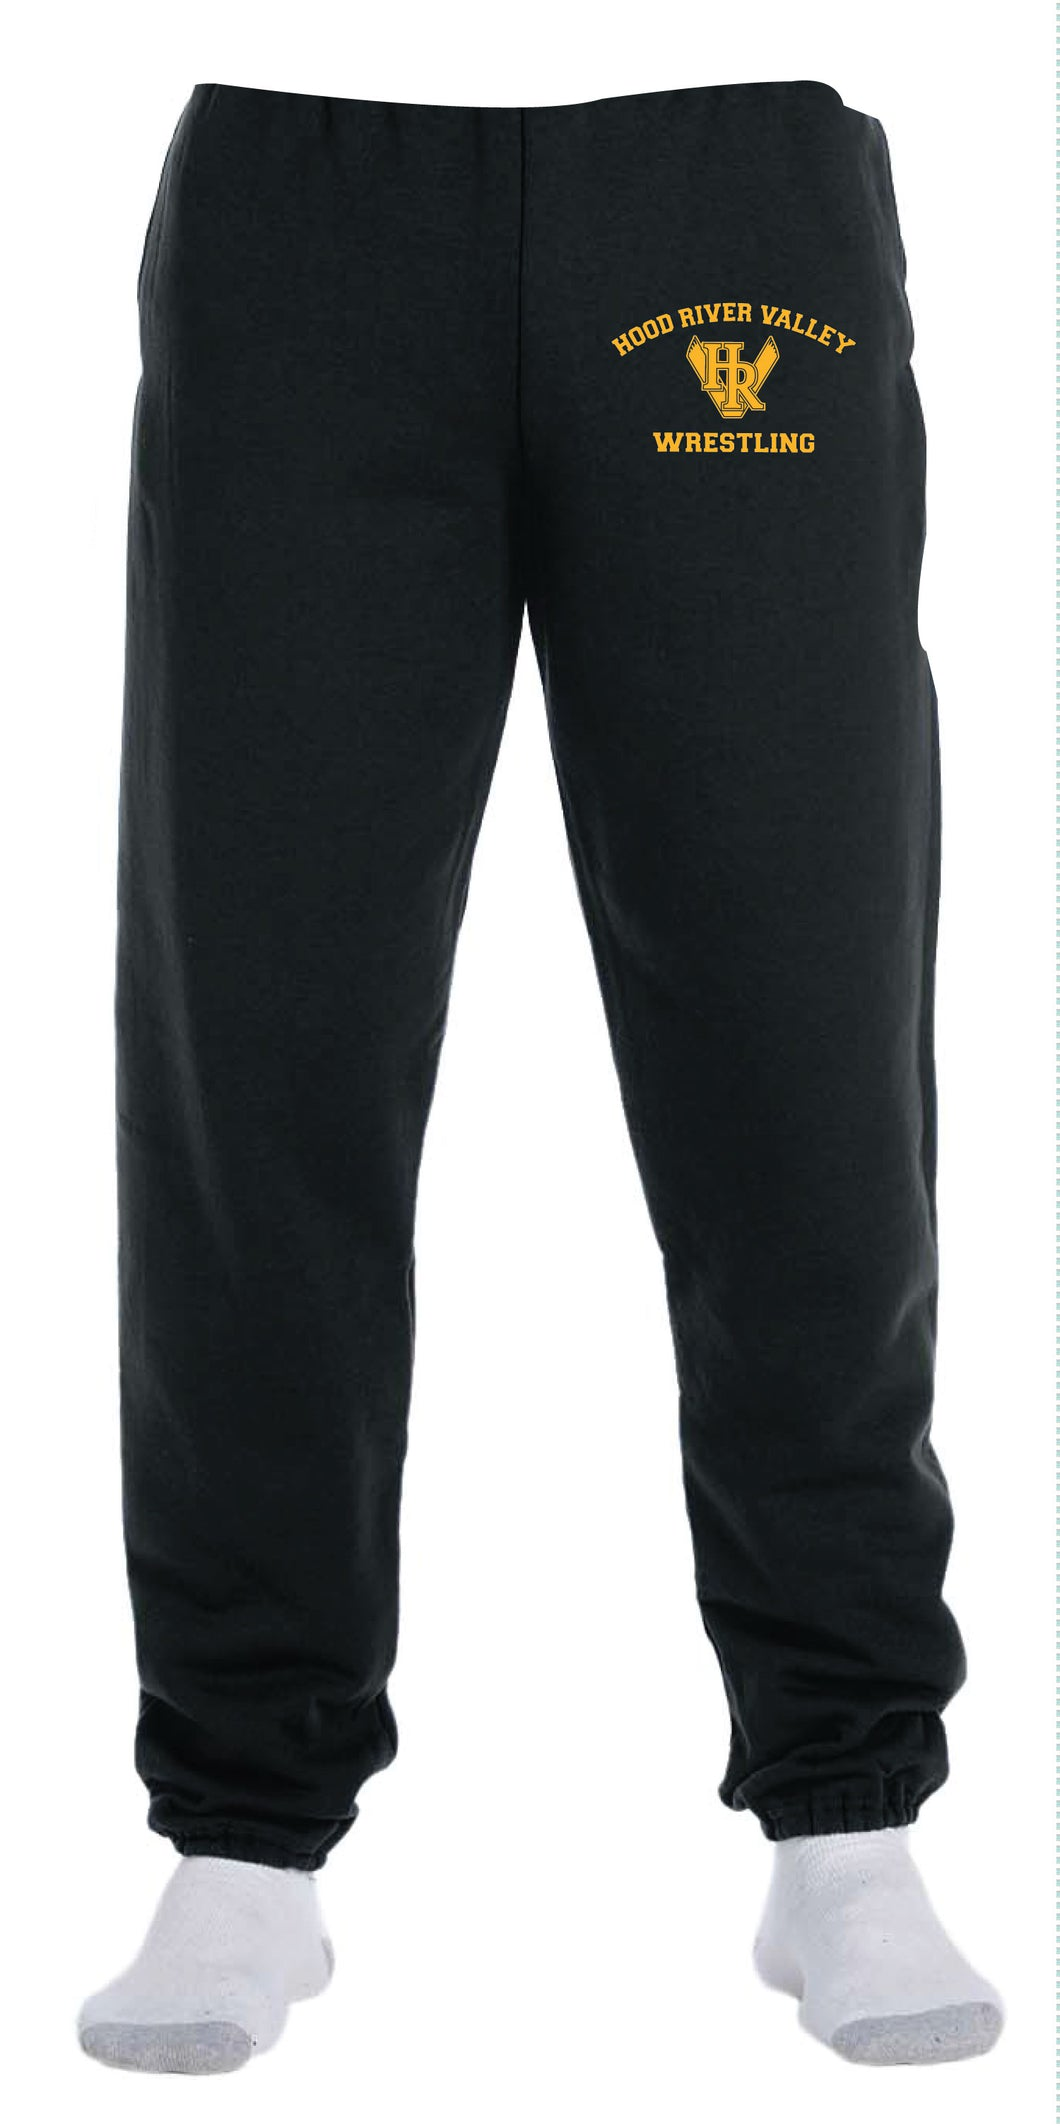 HRVHS Cotton Sweatpants